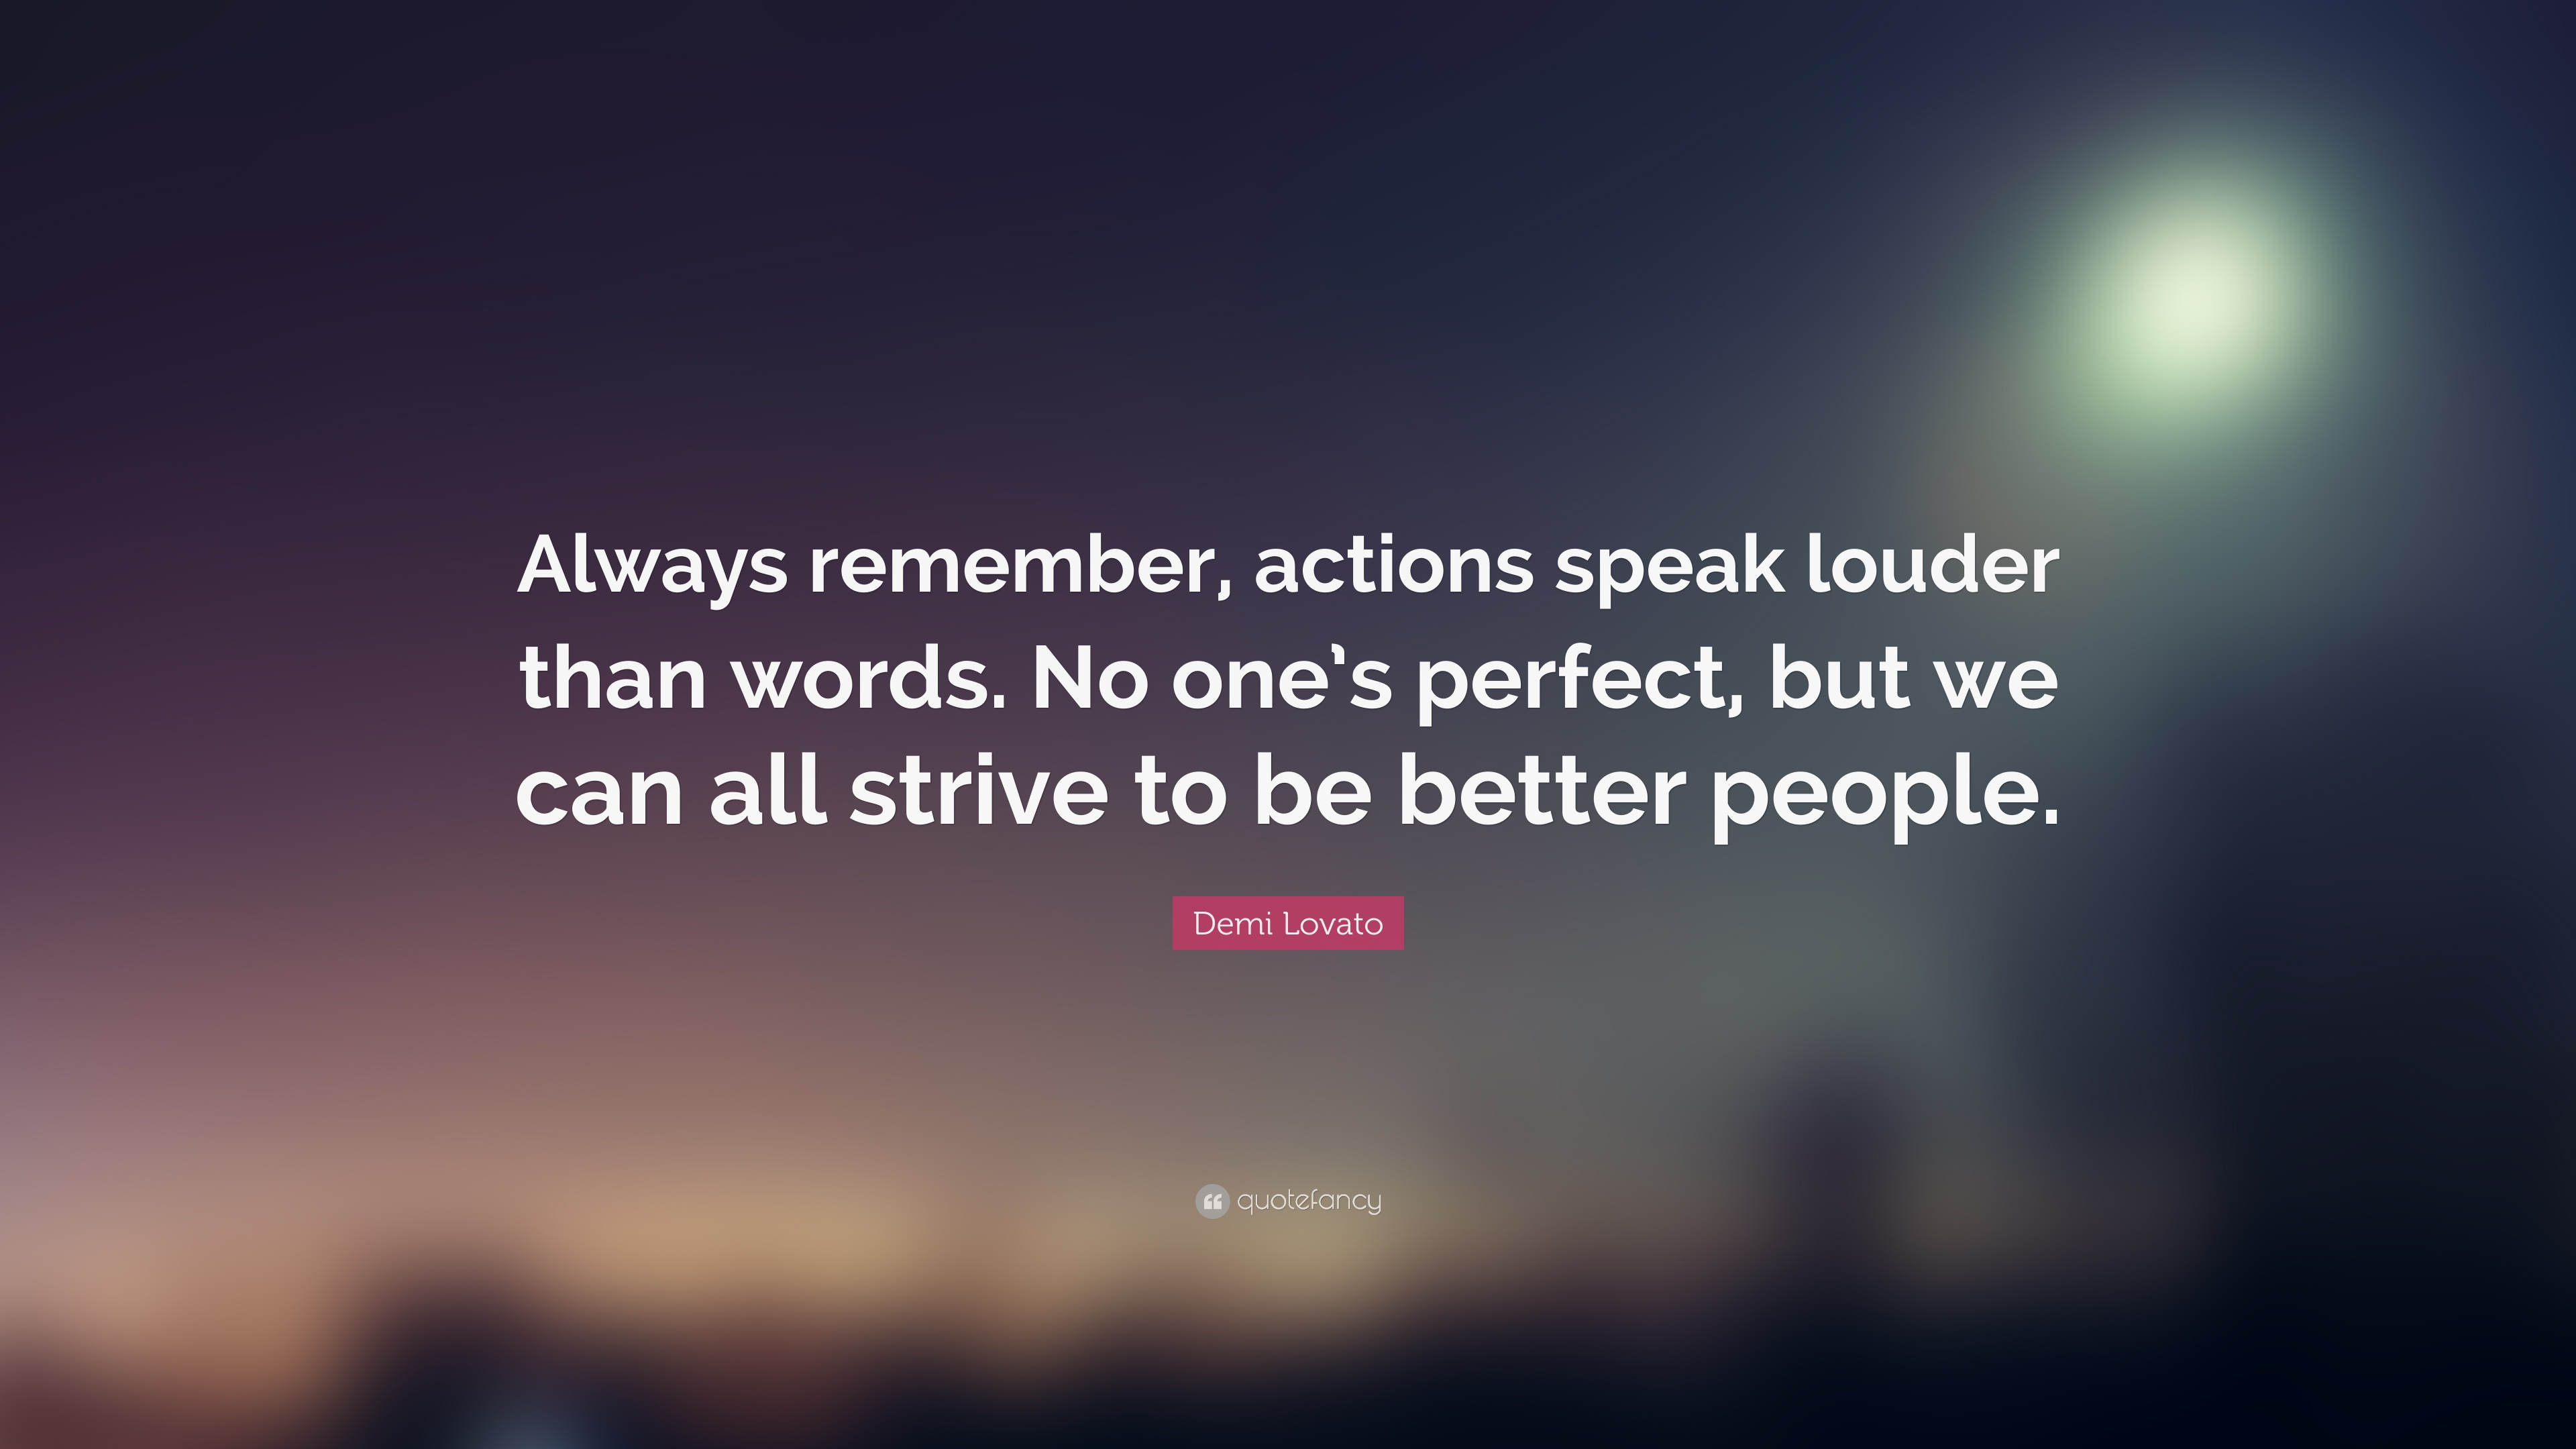 actions speak louder than words essay love quotes actions speak louder than words valentine day